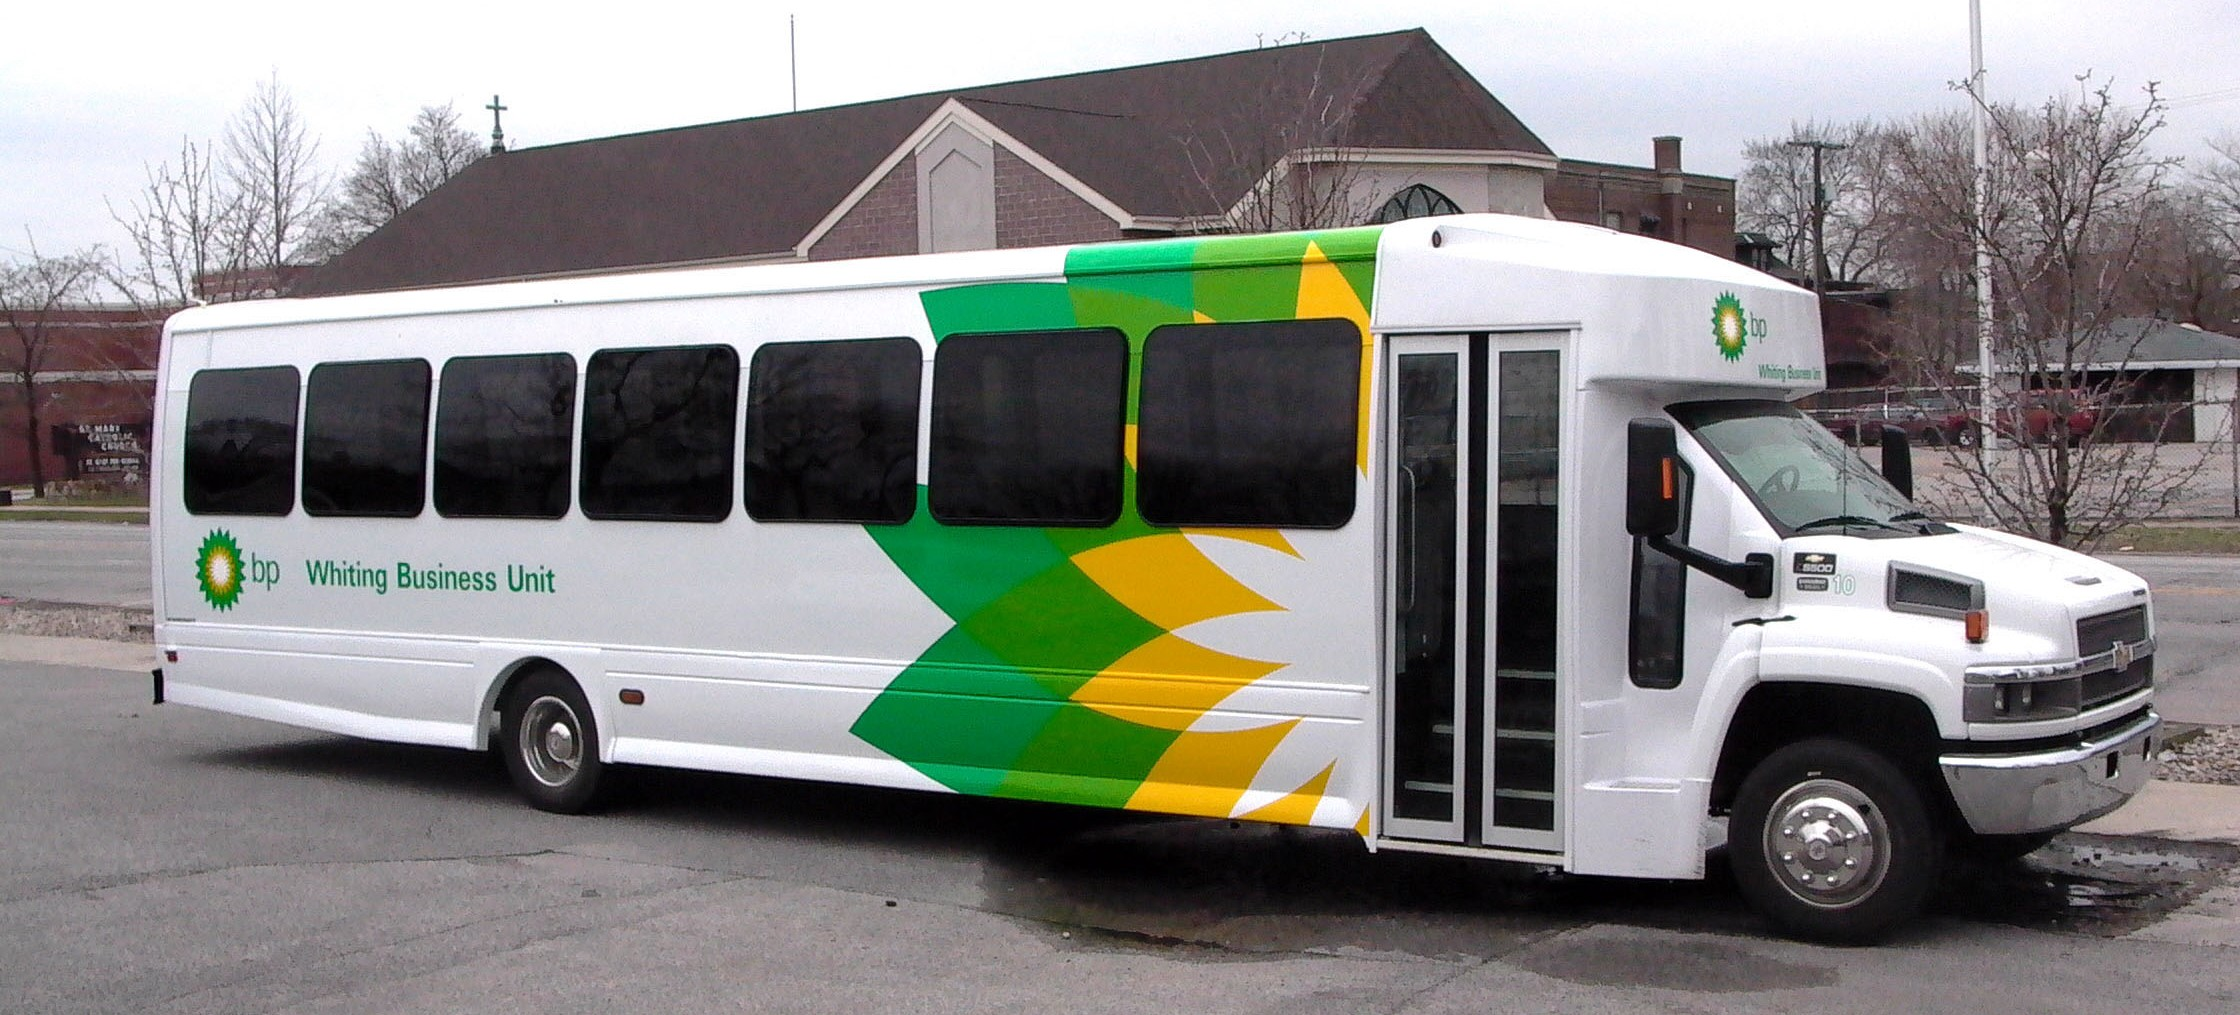 Custom Vehicle Graphics For Your Business Needs